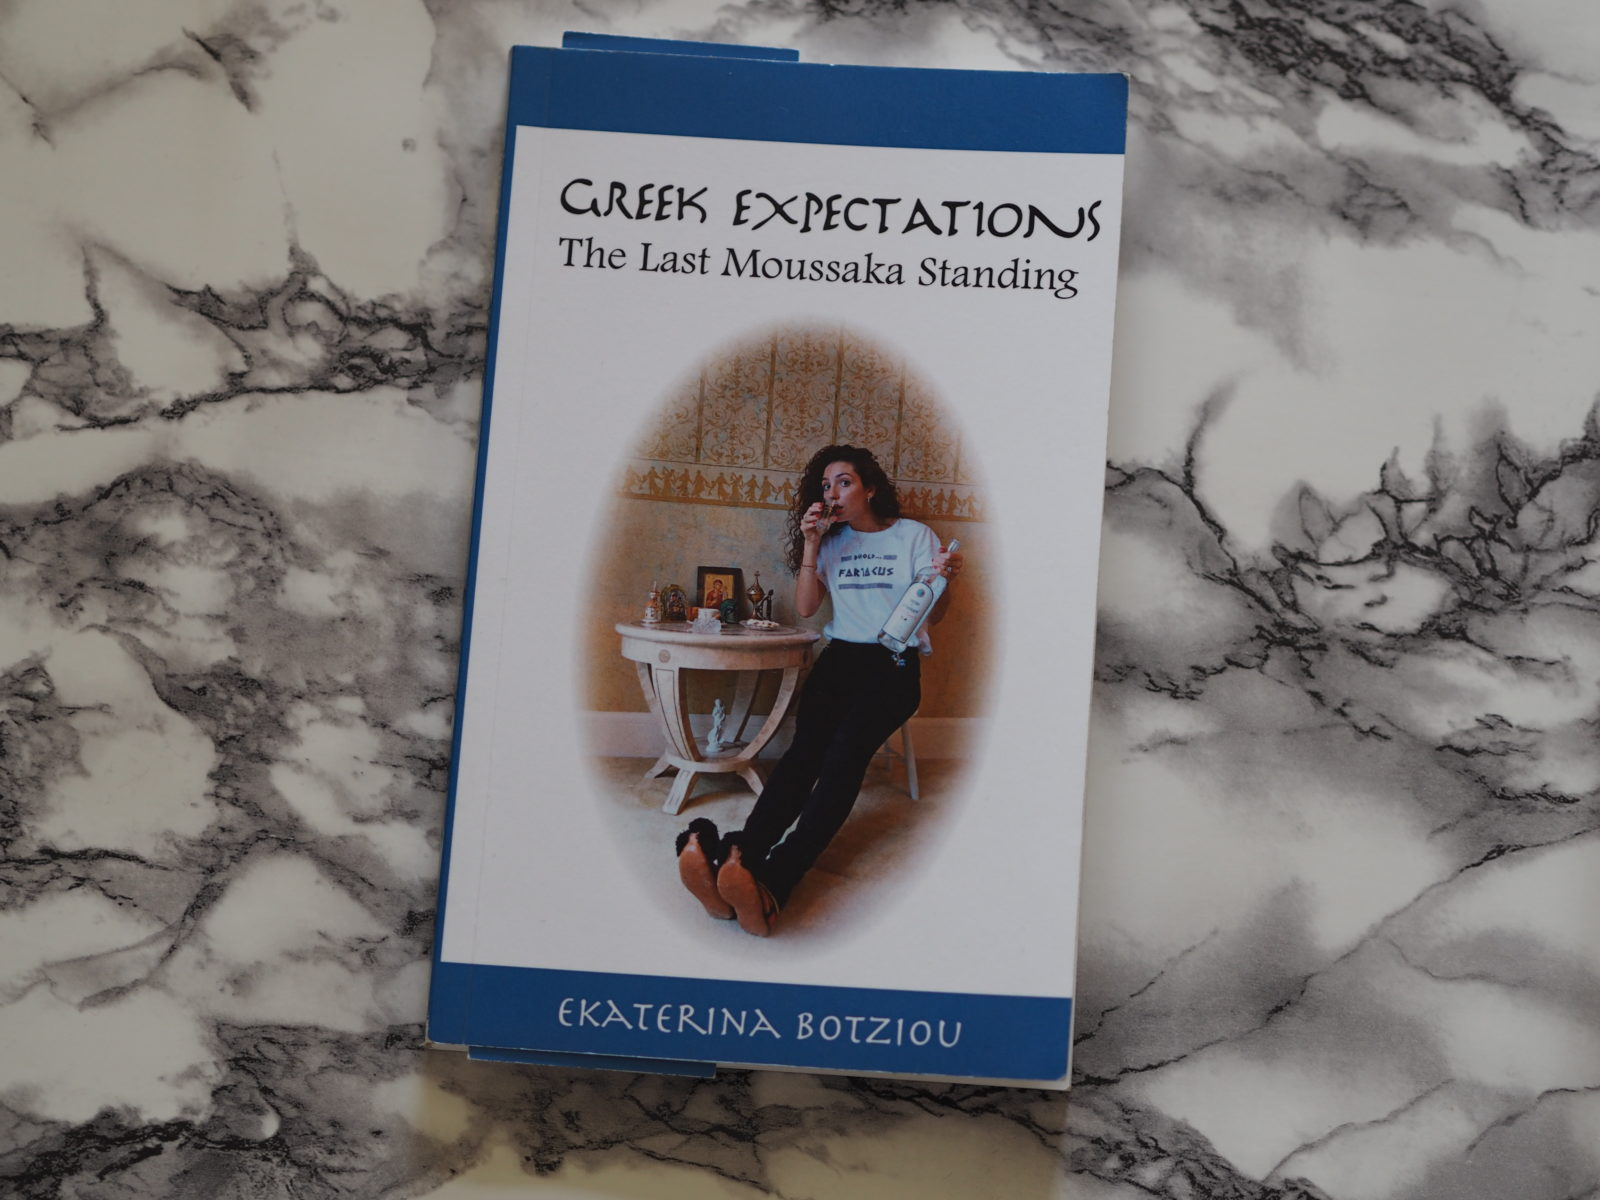 greek expectations book